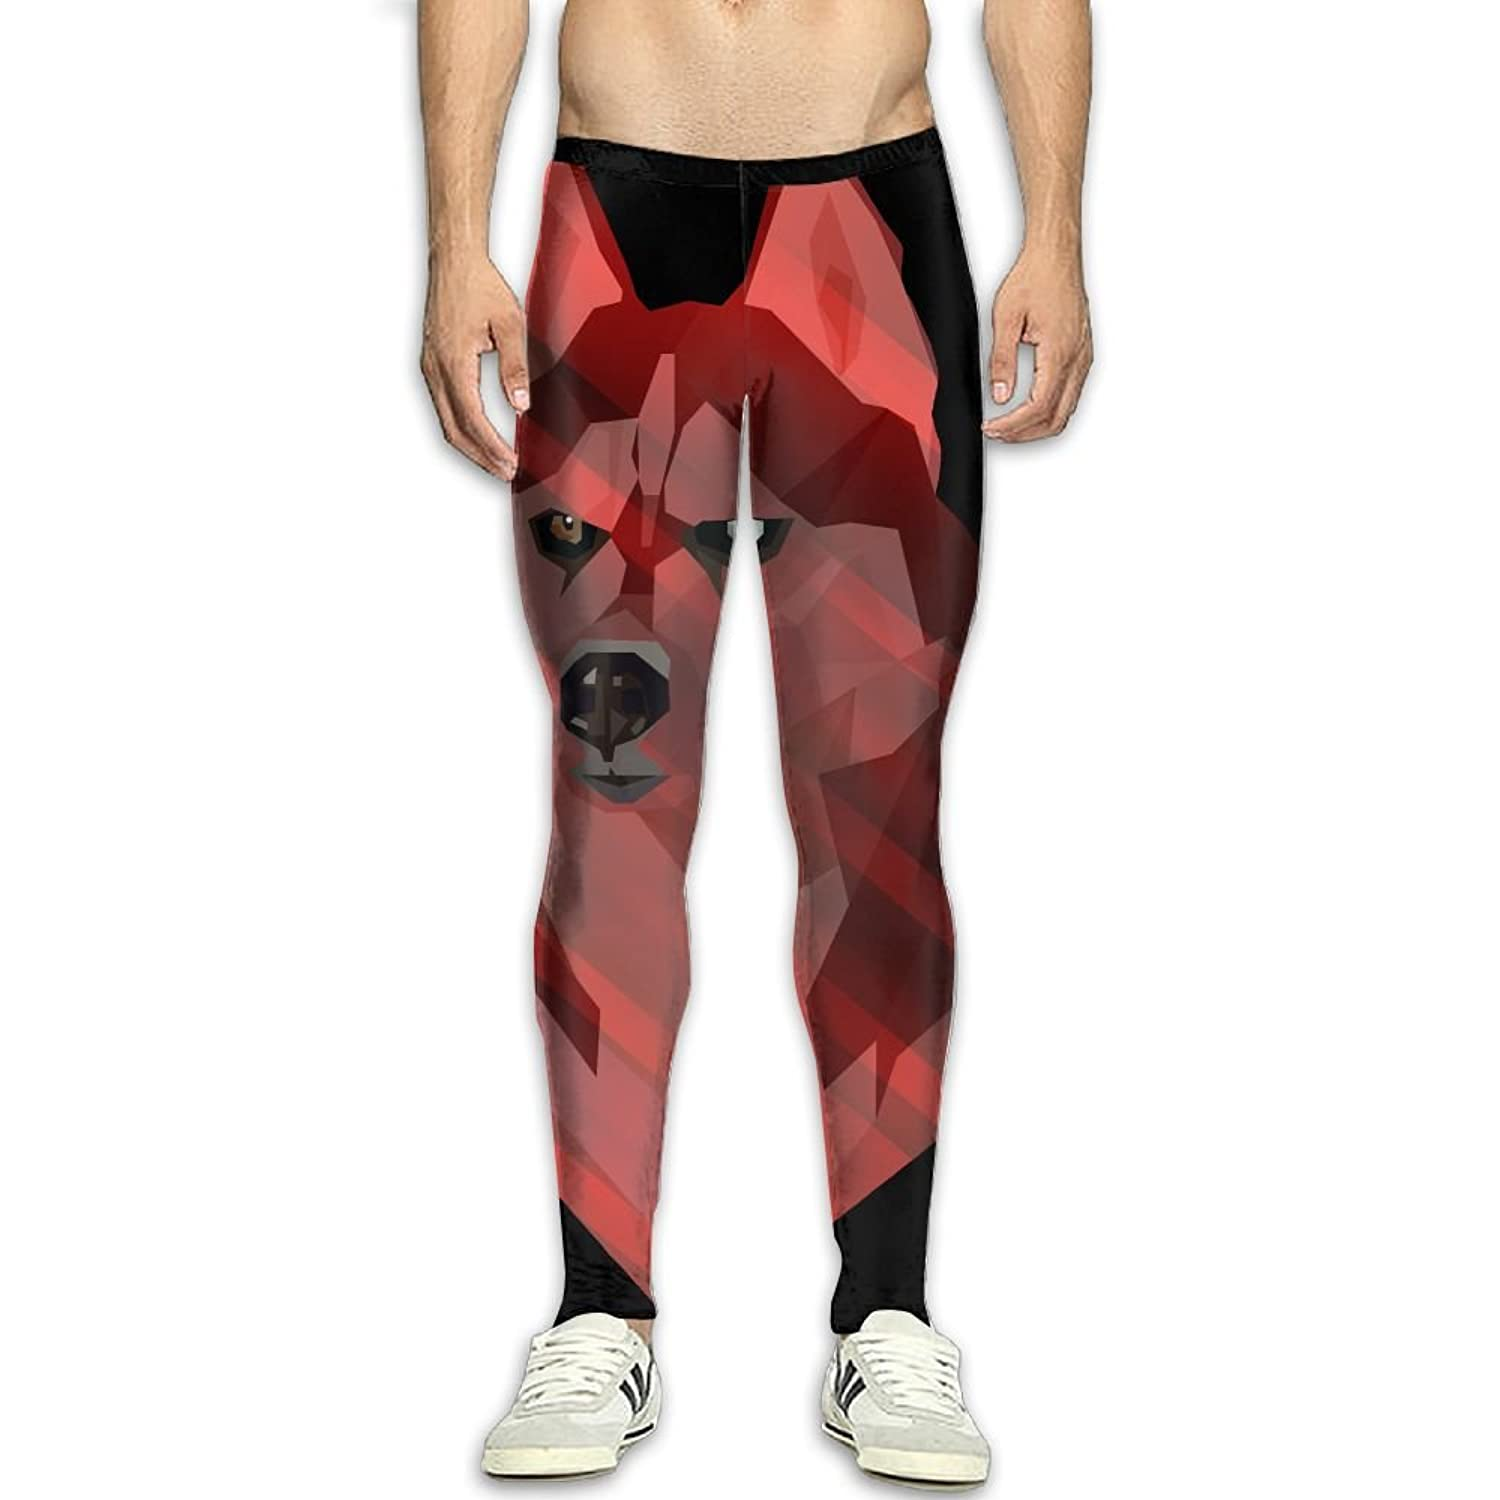 Fri Siberian Husky Dog Compression Pants//Running Tights Panel Leggings Men High Waist